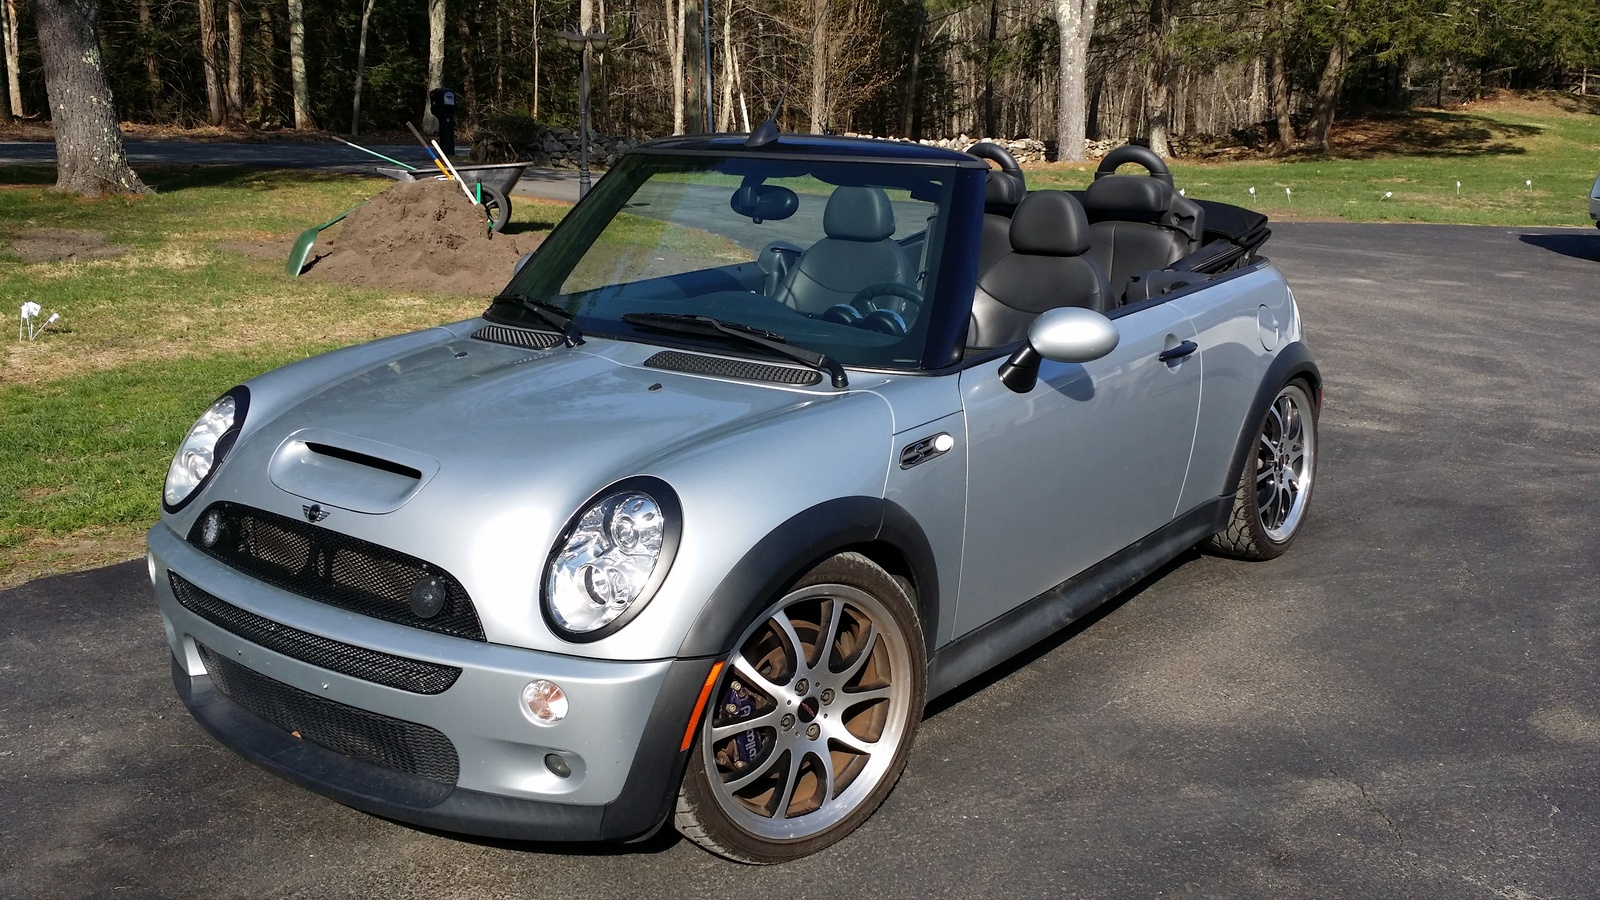 The Mini Cooper Cabrio is an awesome girl car.